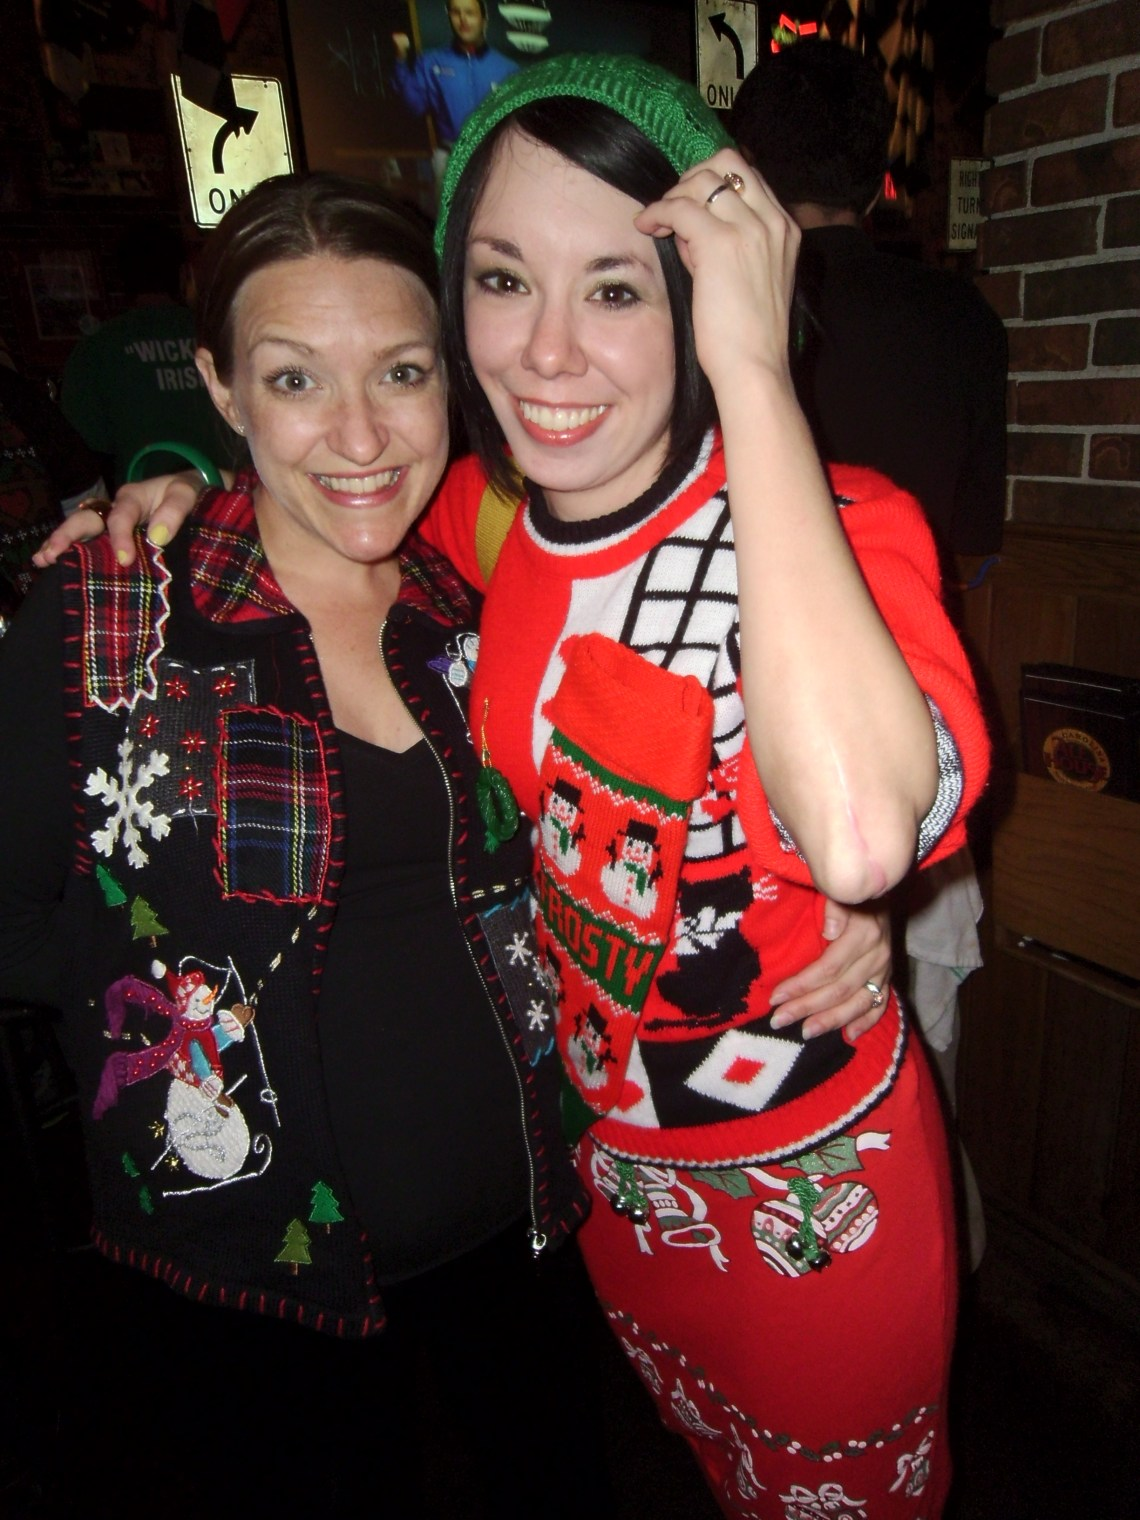 Day 162:  Ugly Christmas Sweater Time! 1